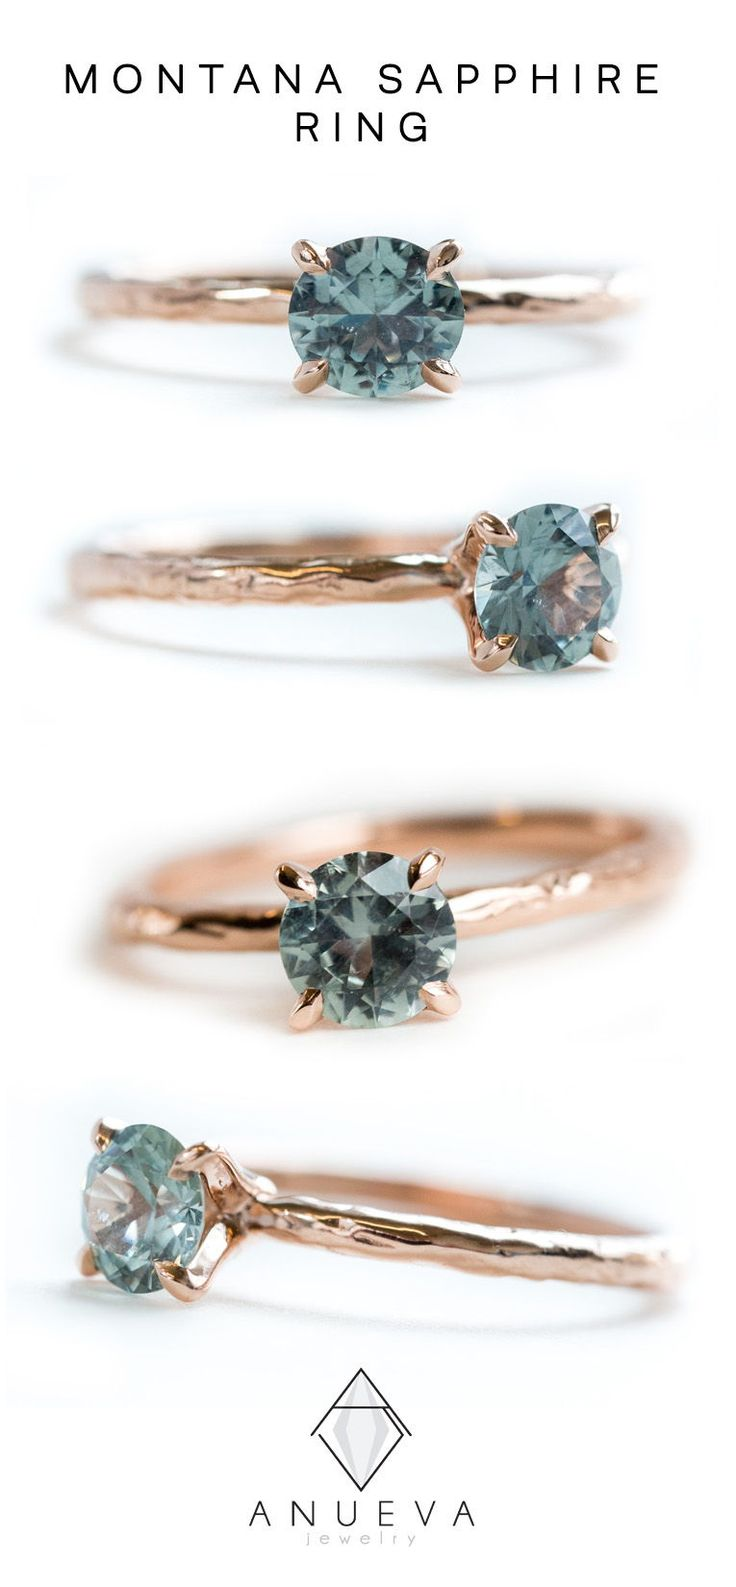 0.78ct Light Blue Green Montana Sapphire Solitaire Ring – Organic Carved Rose Gold 4 Prong- Teal Mermaid Sapphire